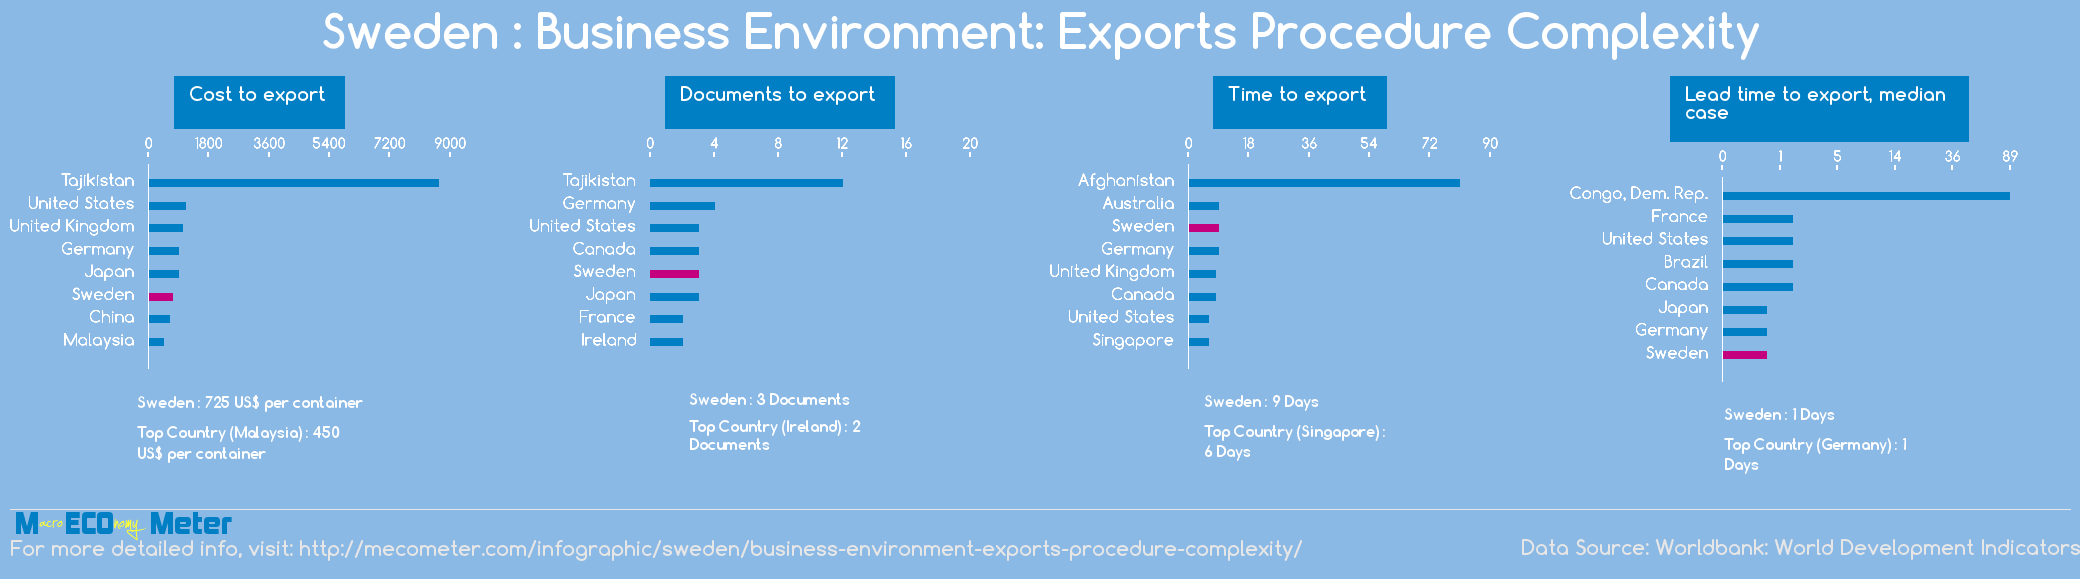 Sweden : Business Environment: Exports Procedure Complexity